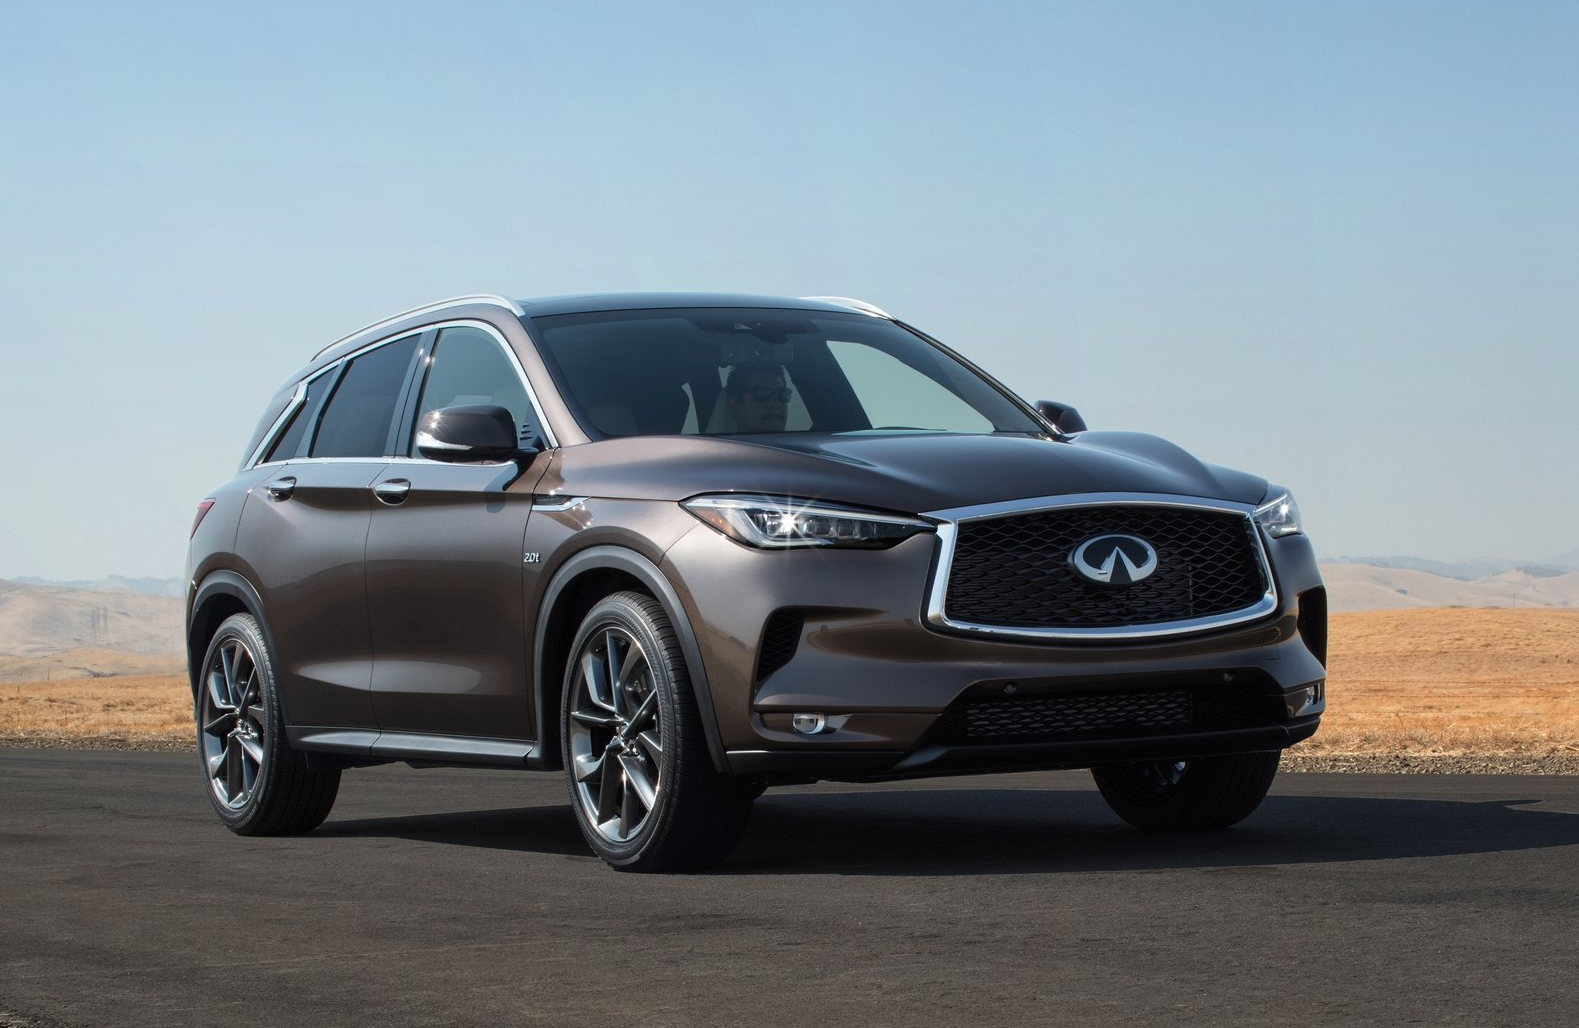 Three Reasons to Buy the 2019 Infiniti QX50 Instead of the Volvo XC60